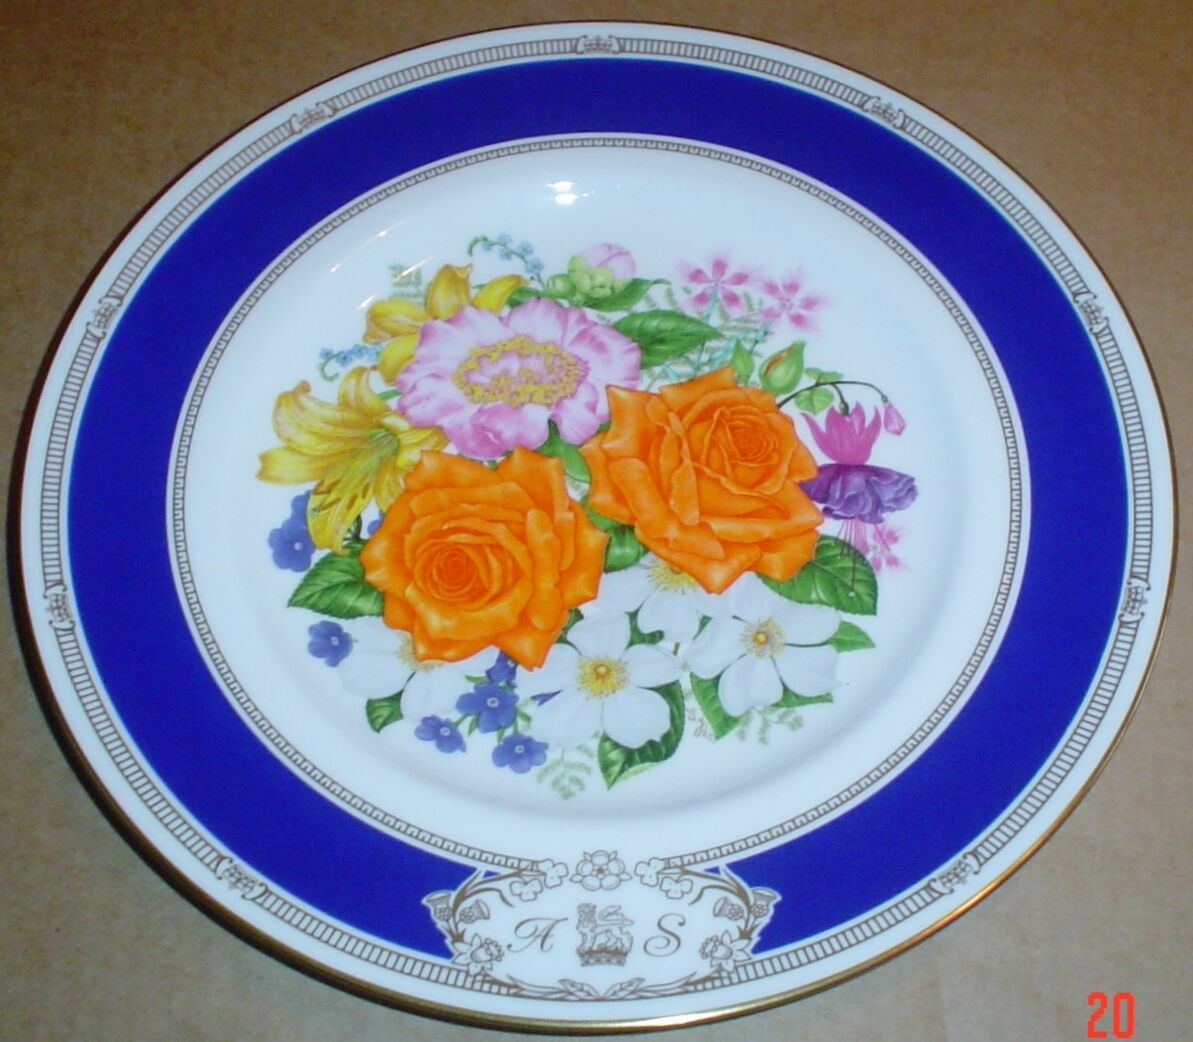 Royal Worcester Collectors Plate ROYAL WEDDING OF SARAH AND ANDREW